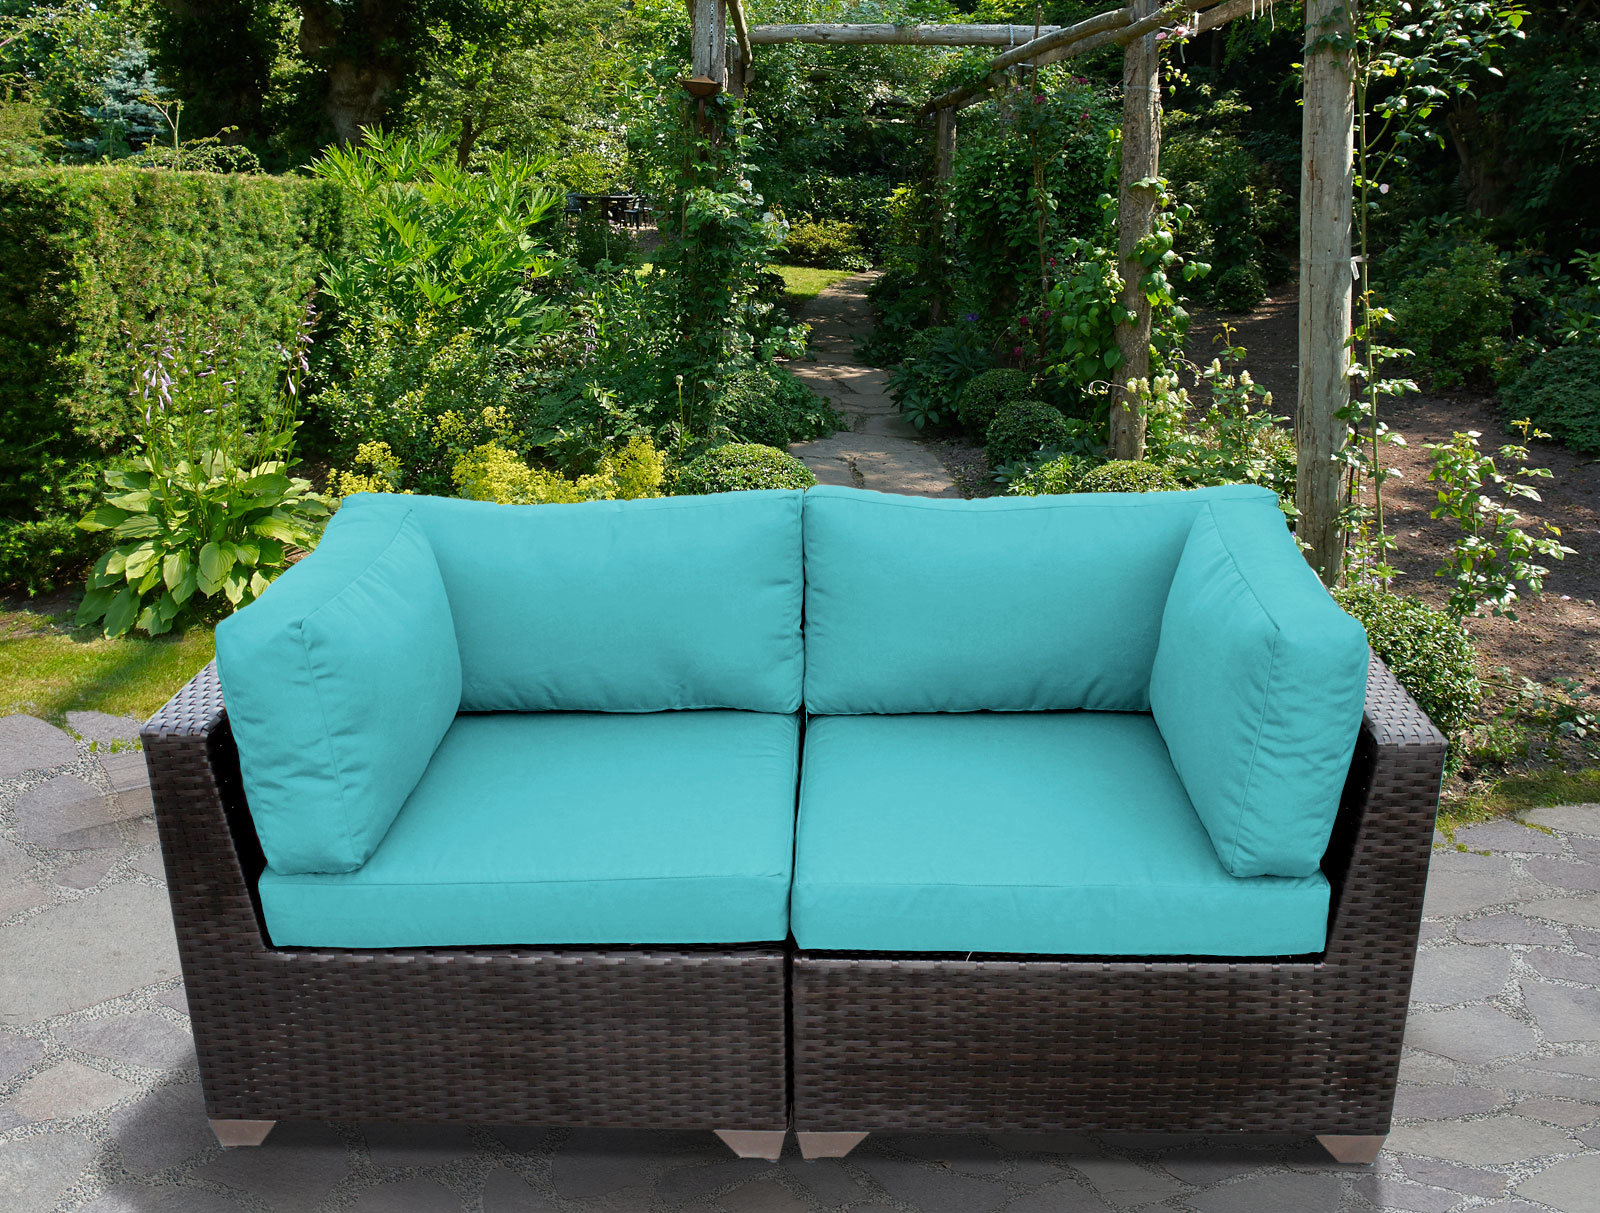 Camak Patio Loveseat With Cushions Intended For Most Current Camak Patio Sofas With Cushions (View 2 of 20)